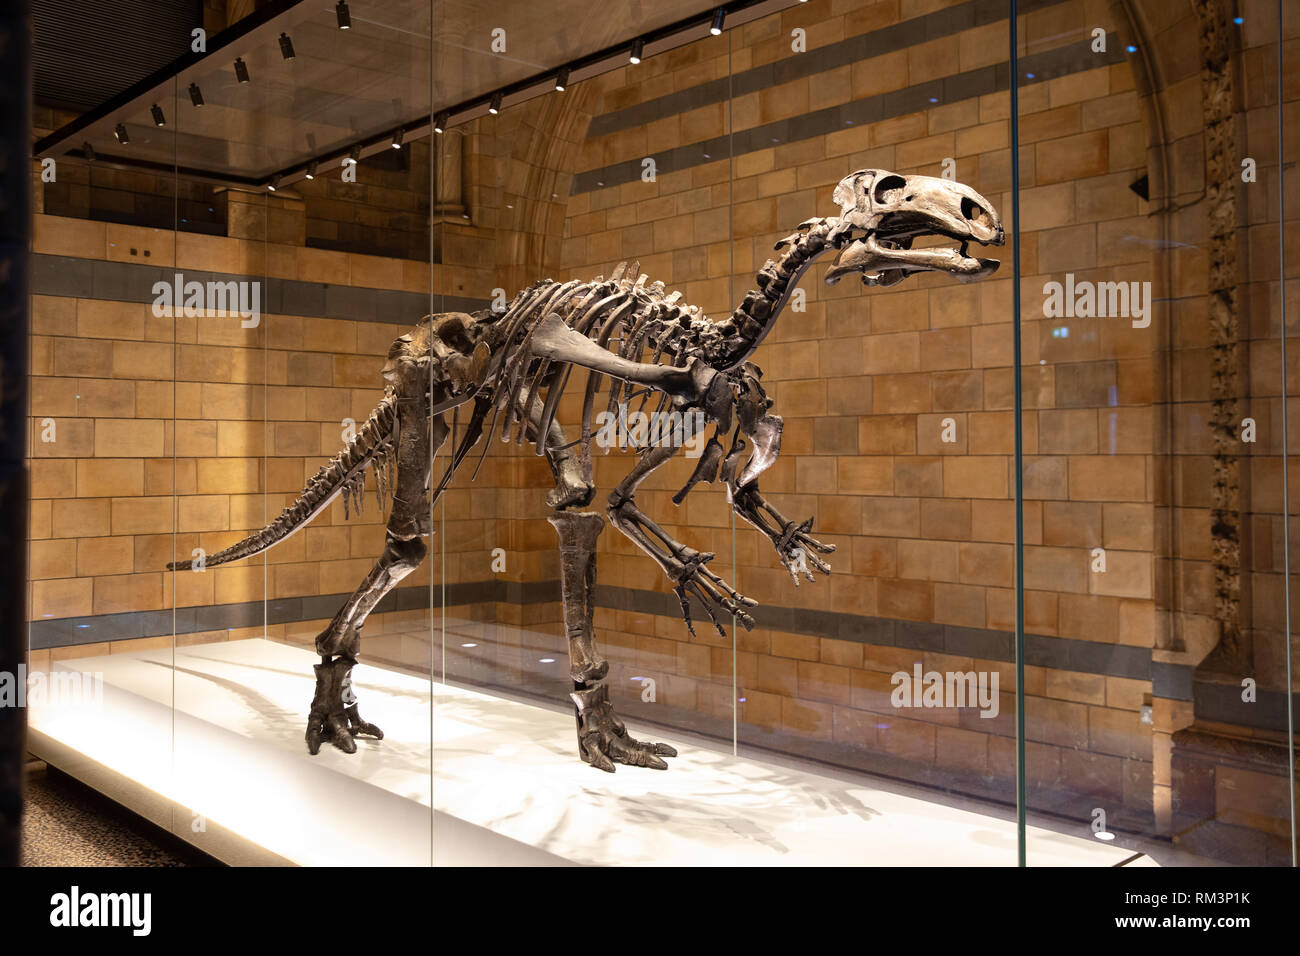 A fossil dinosaur skeleton in The Natural History Museum, London, Uk - Stock Image